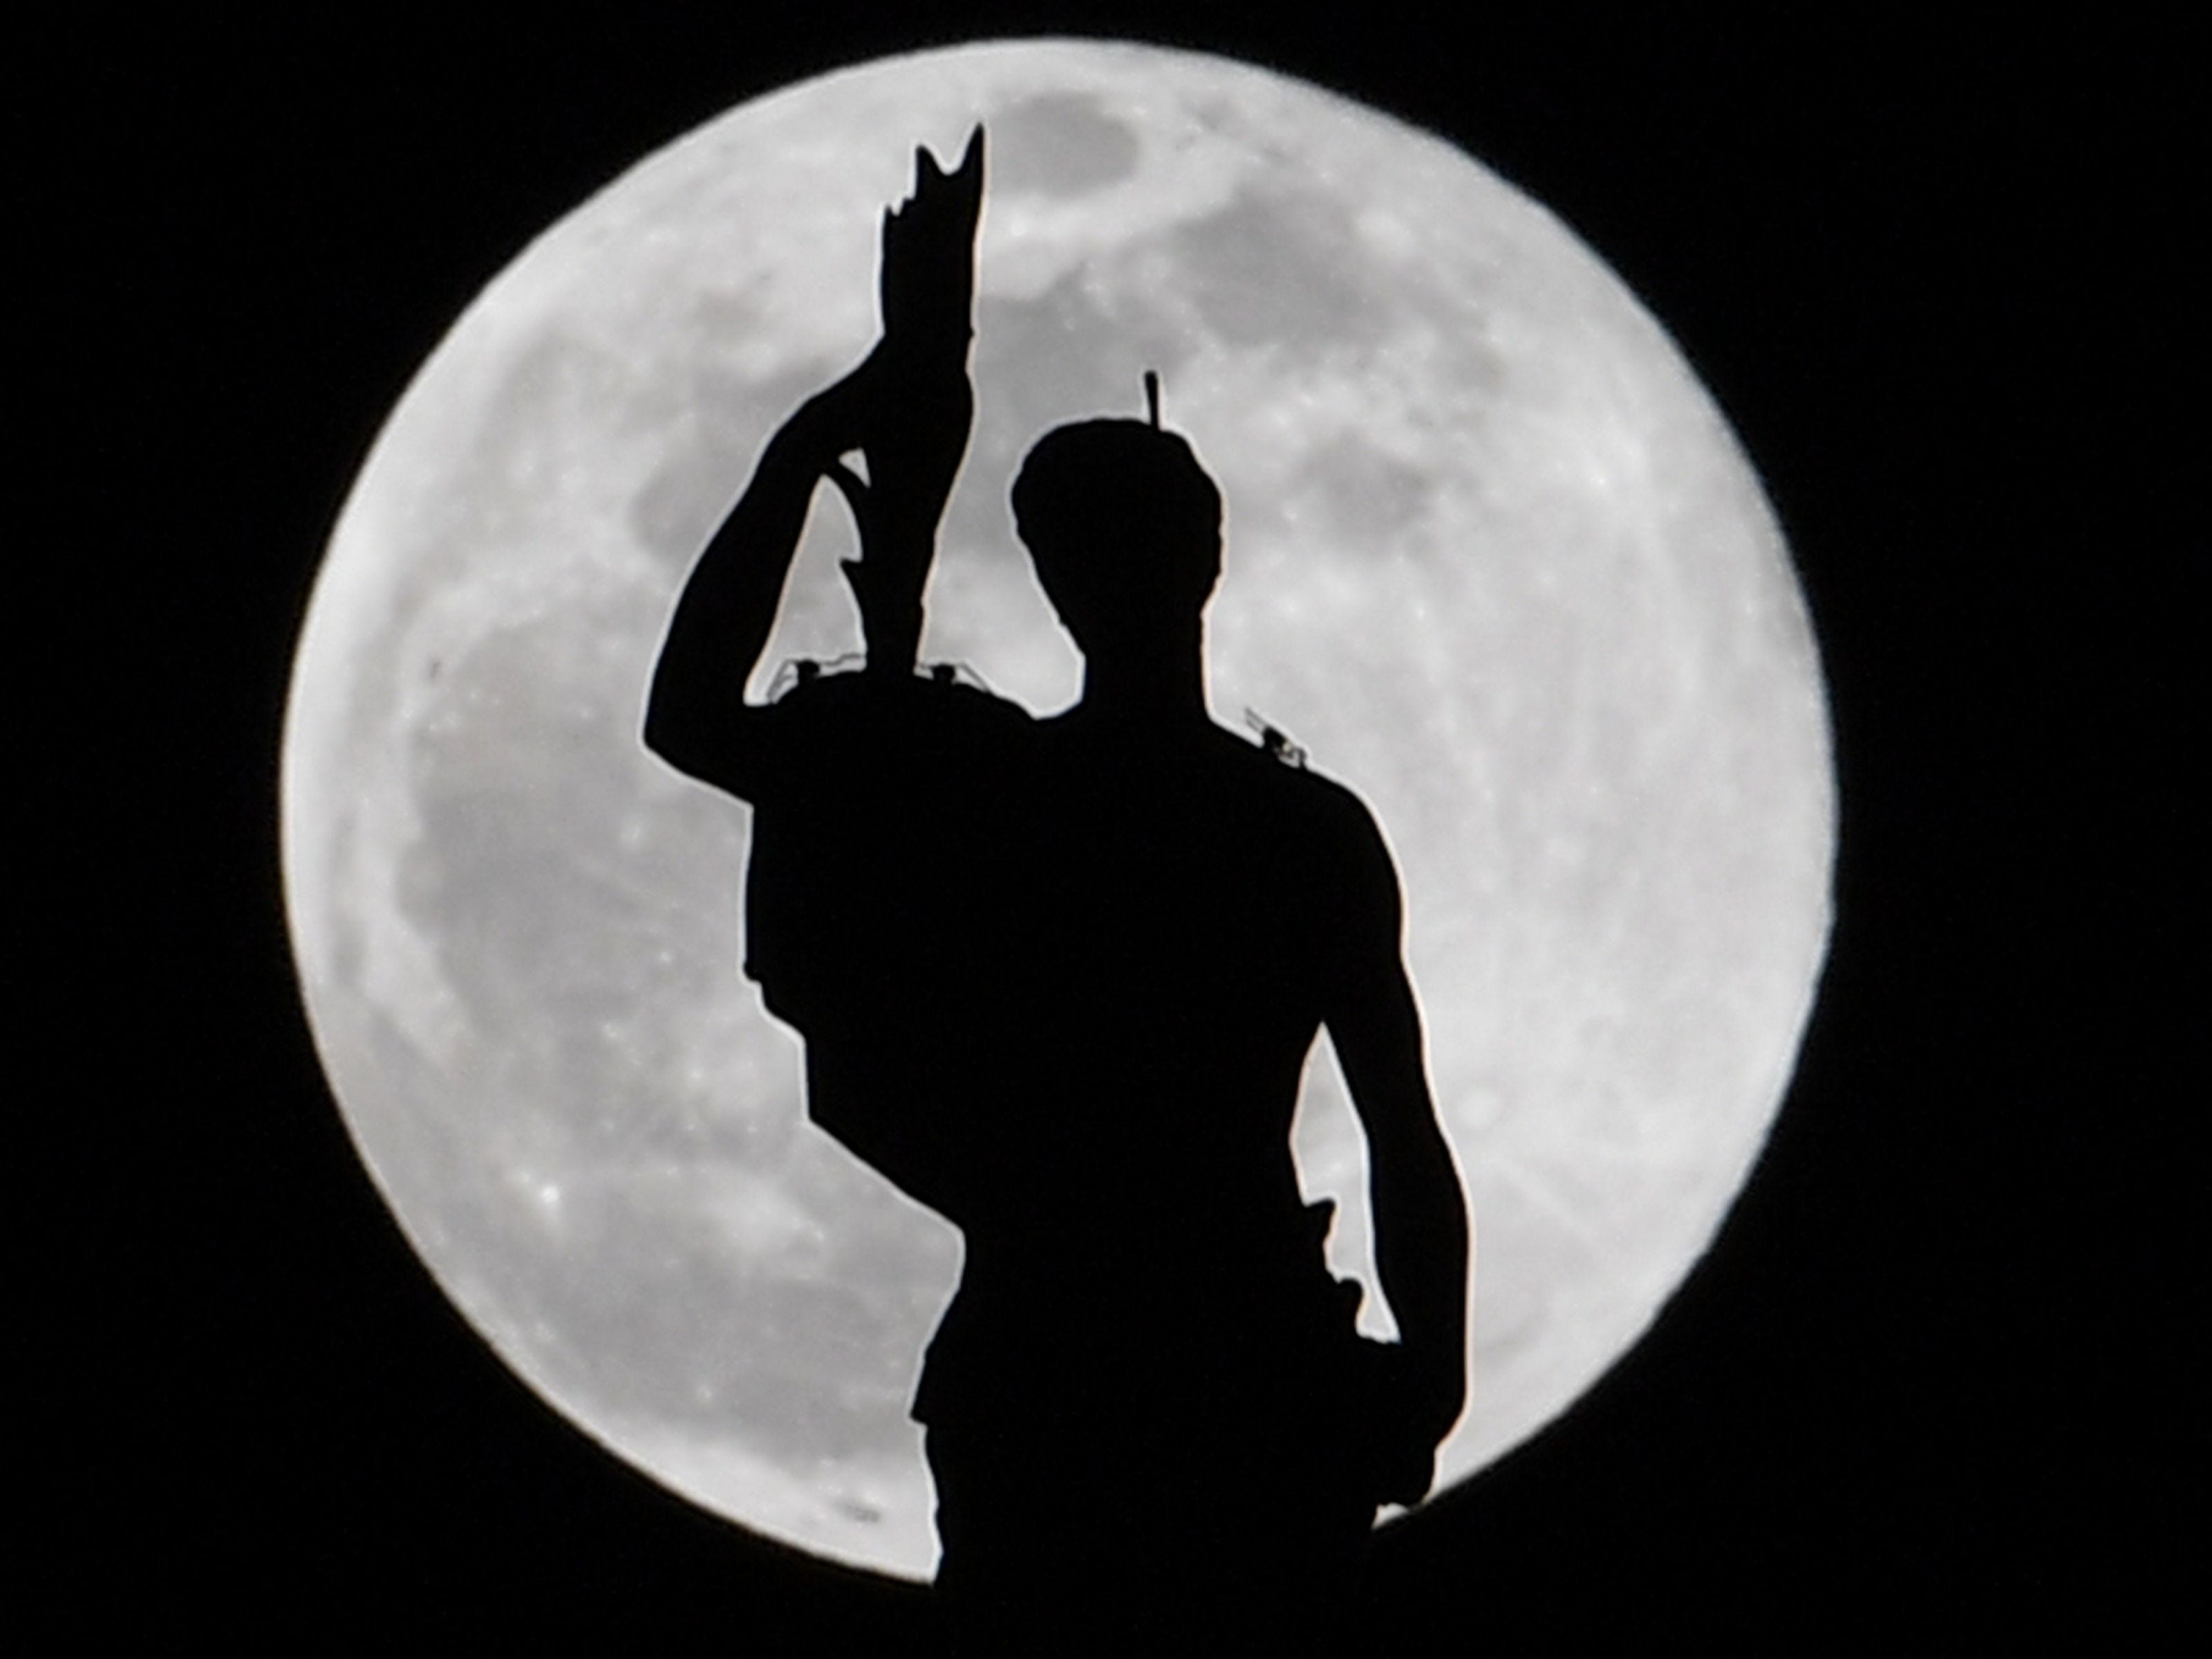 A supermoon silhouettes a statue on Duomo Cathedral in Milan, Italy on Feb. 19, 2019.